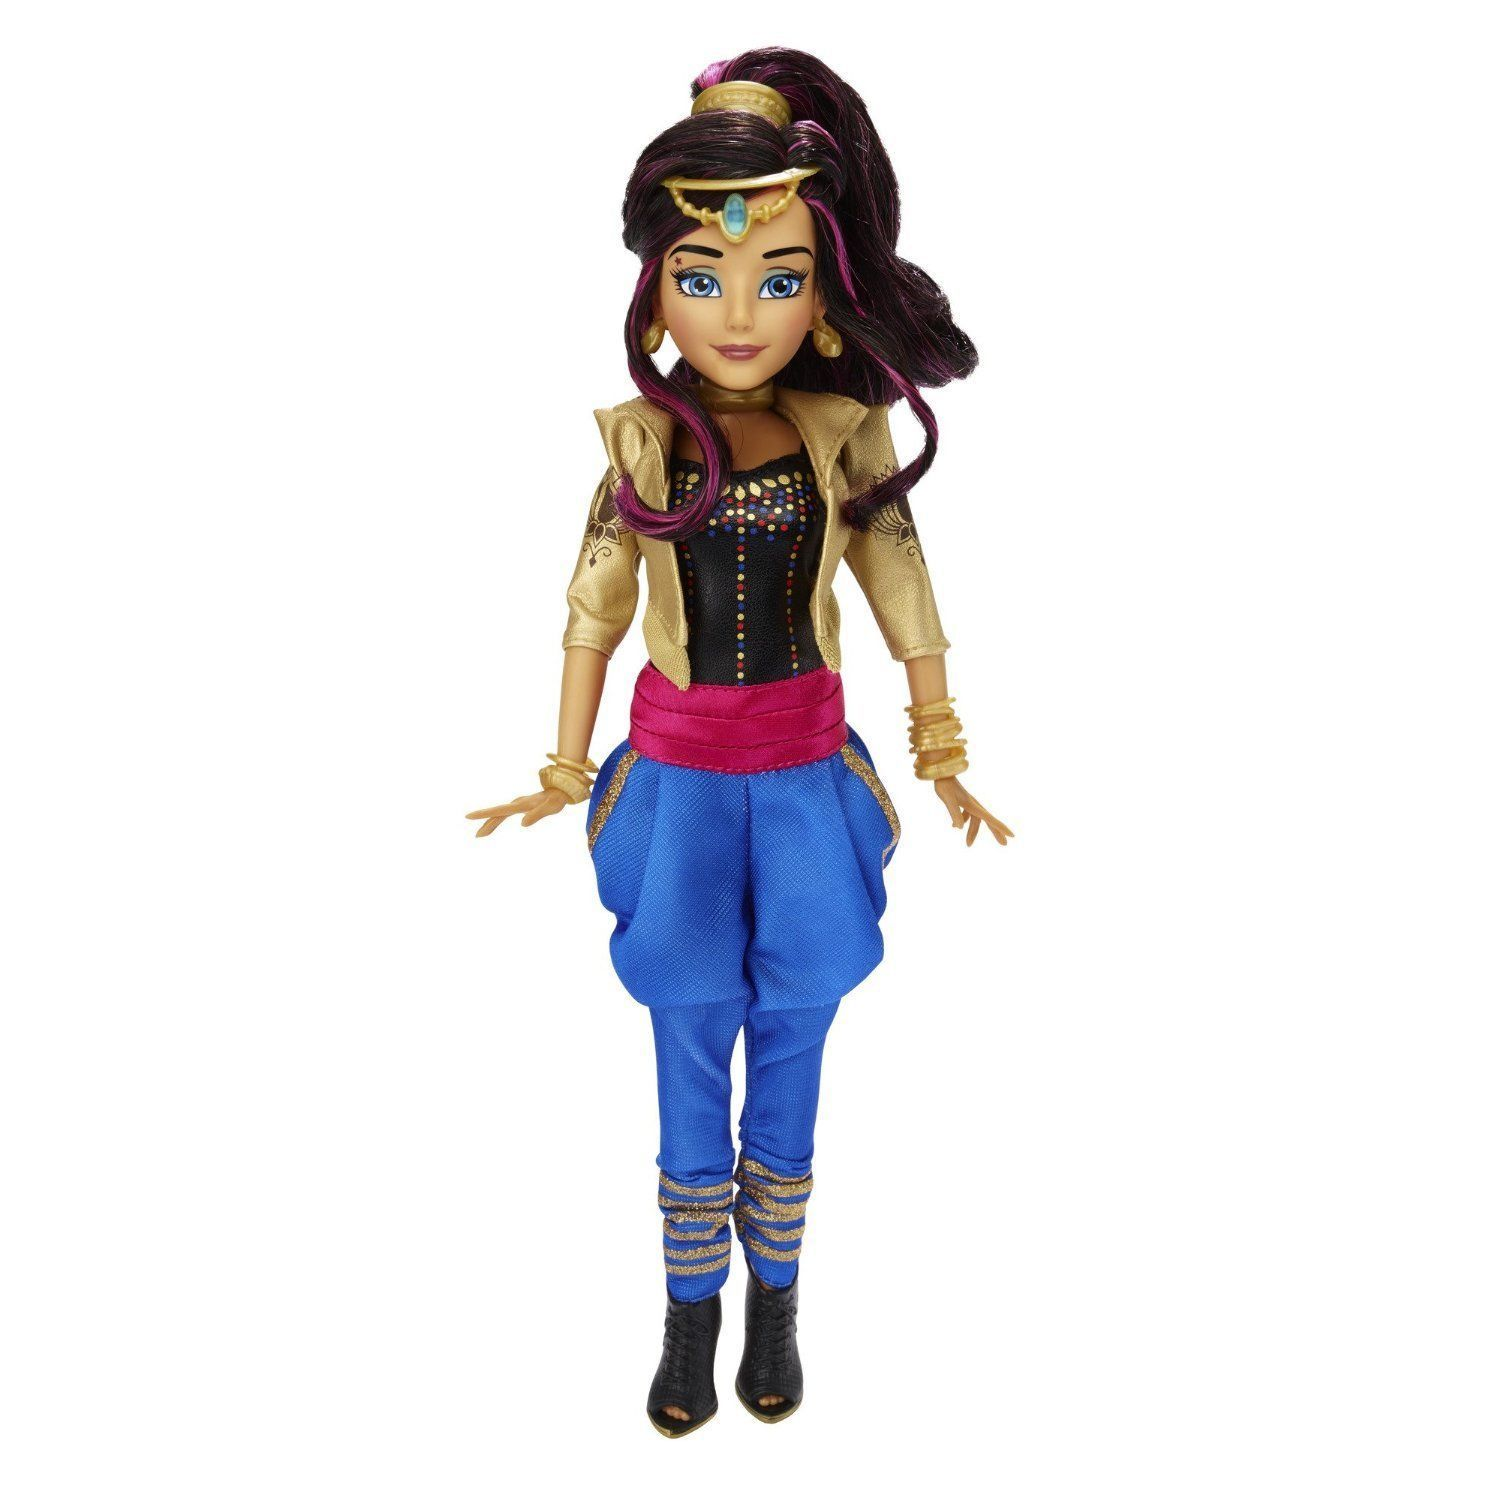 Image 3 of Disney Descendants Auradon Genie Chic Jordan Doll